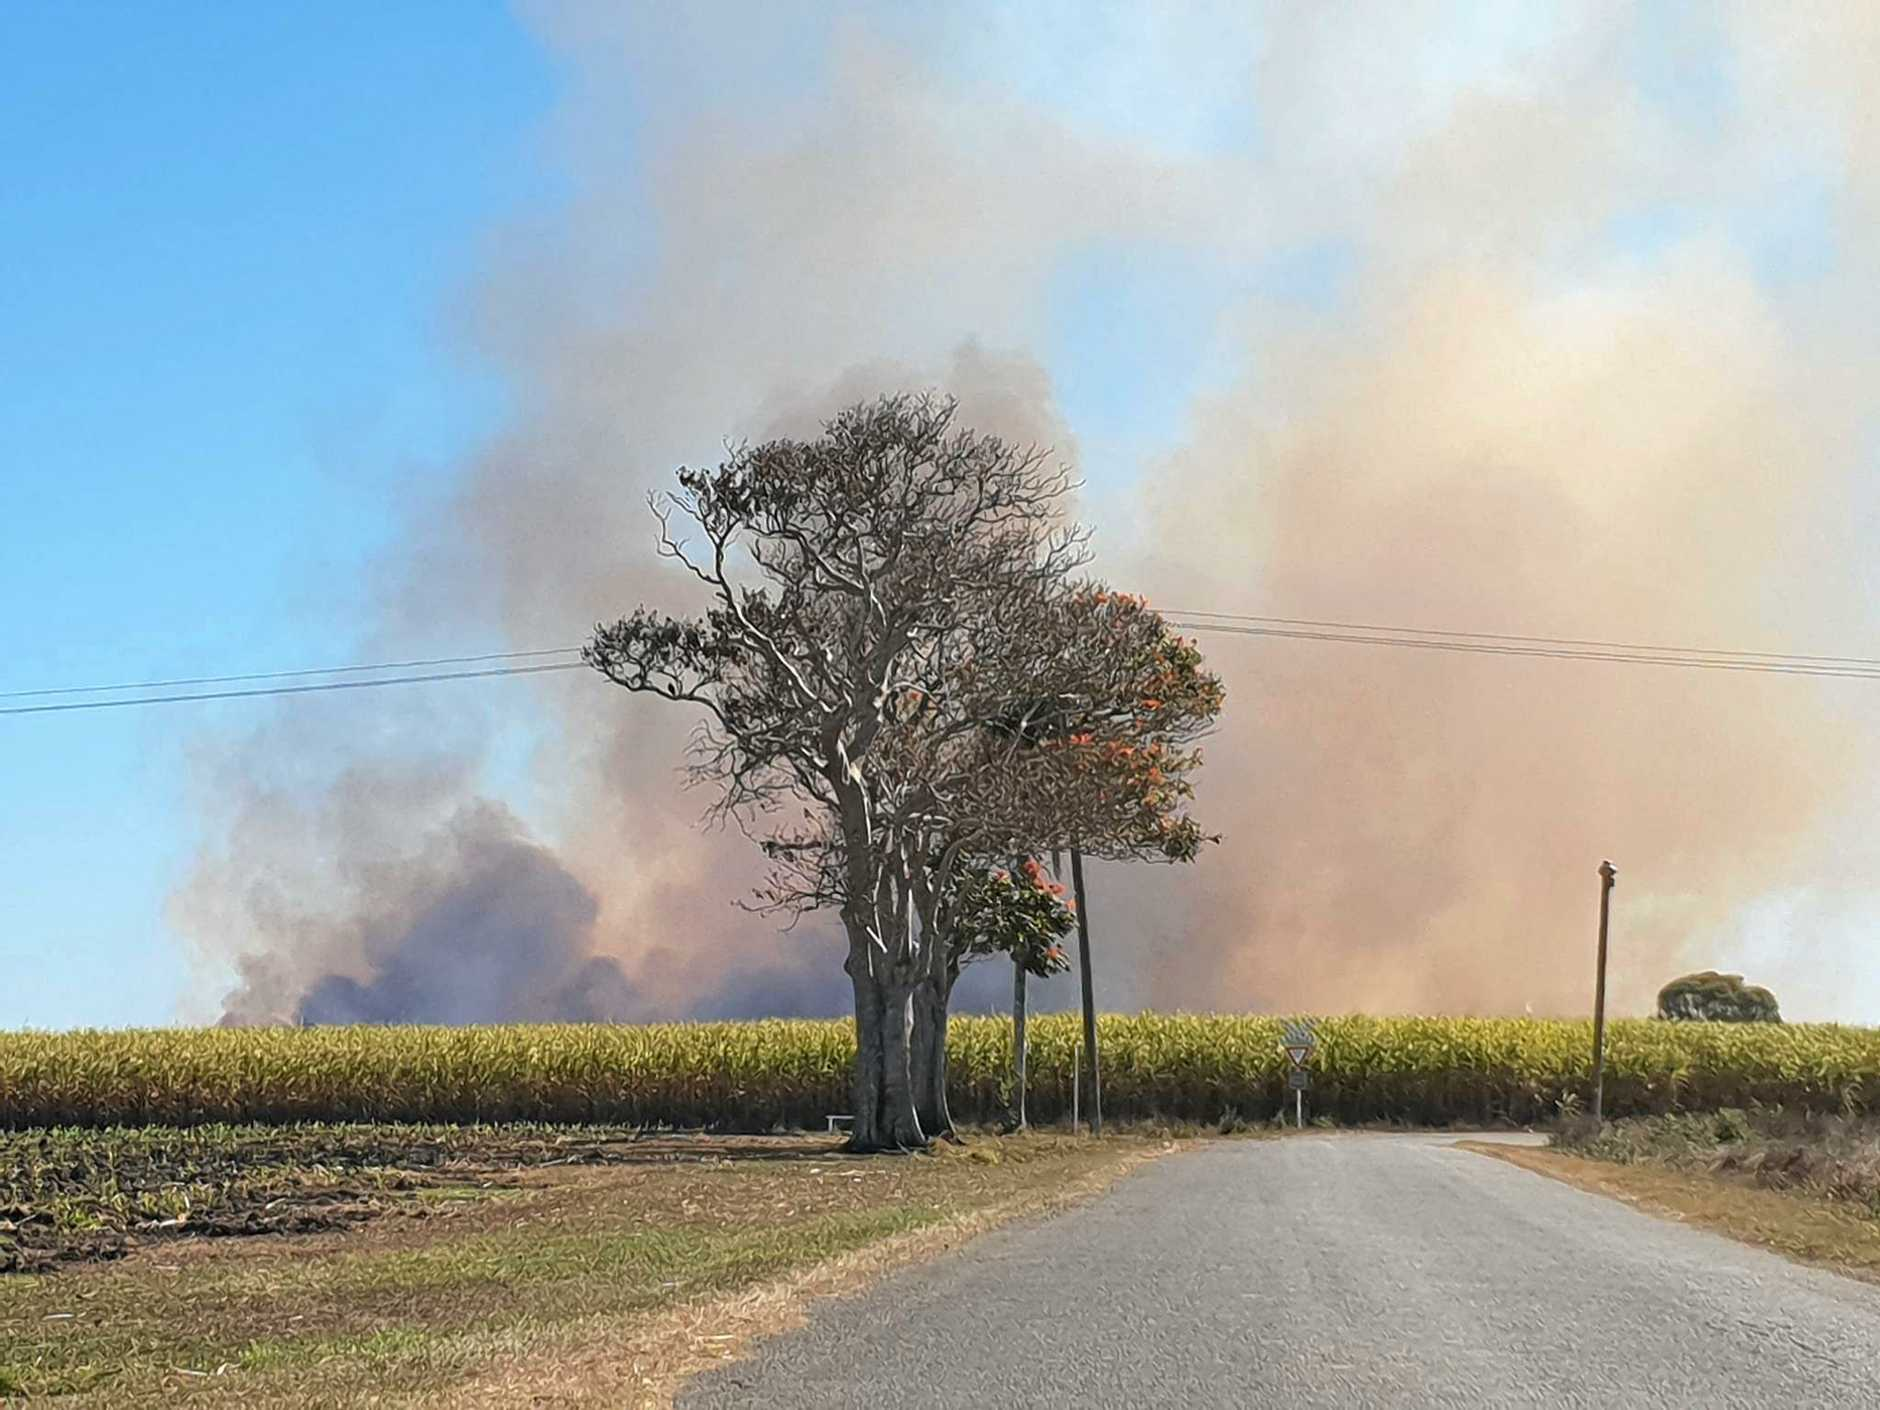 CONTROLLED BURN: Fire fighters conducted a hazard reduction burn on Bundaberg Sugar land this afternoon with the amount of smoke causing concern for some locals.